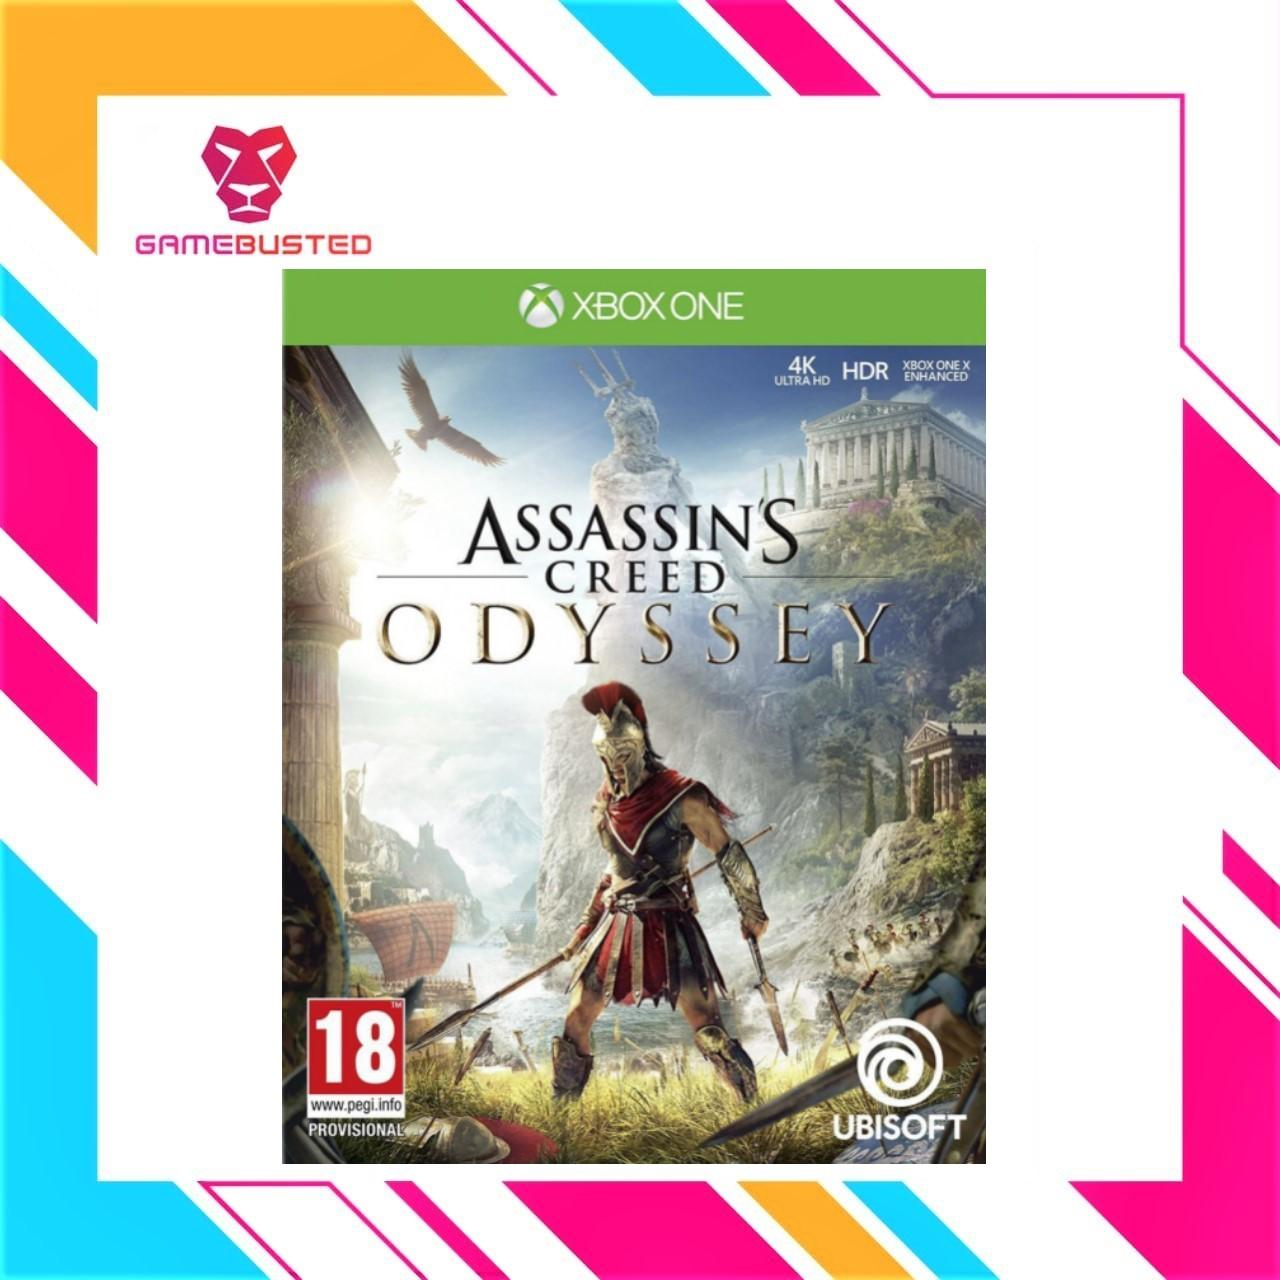 XBOX ONE Assassin's Creed Odyssey